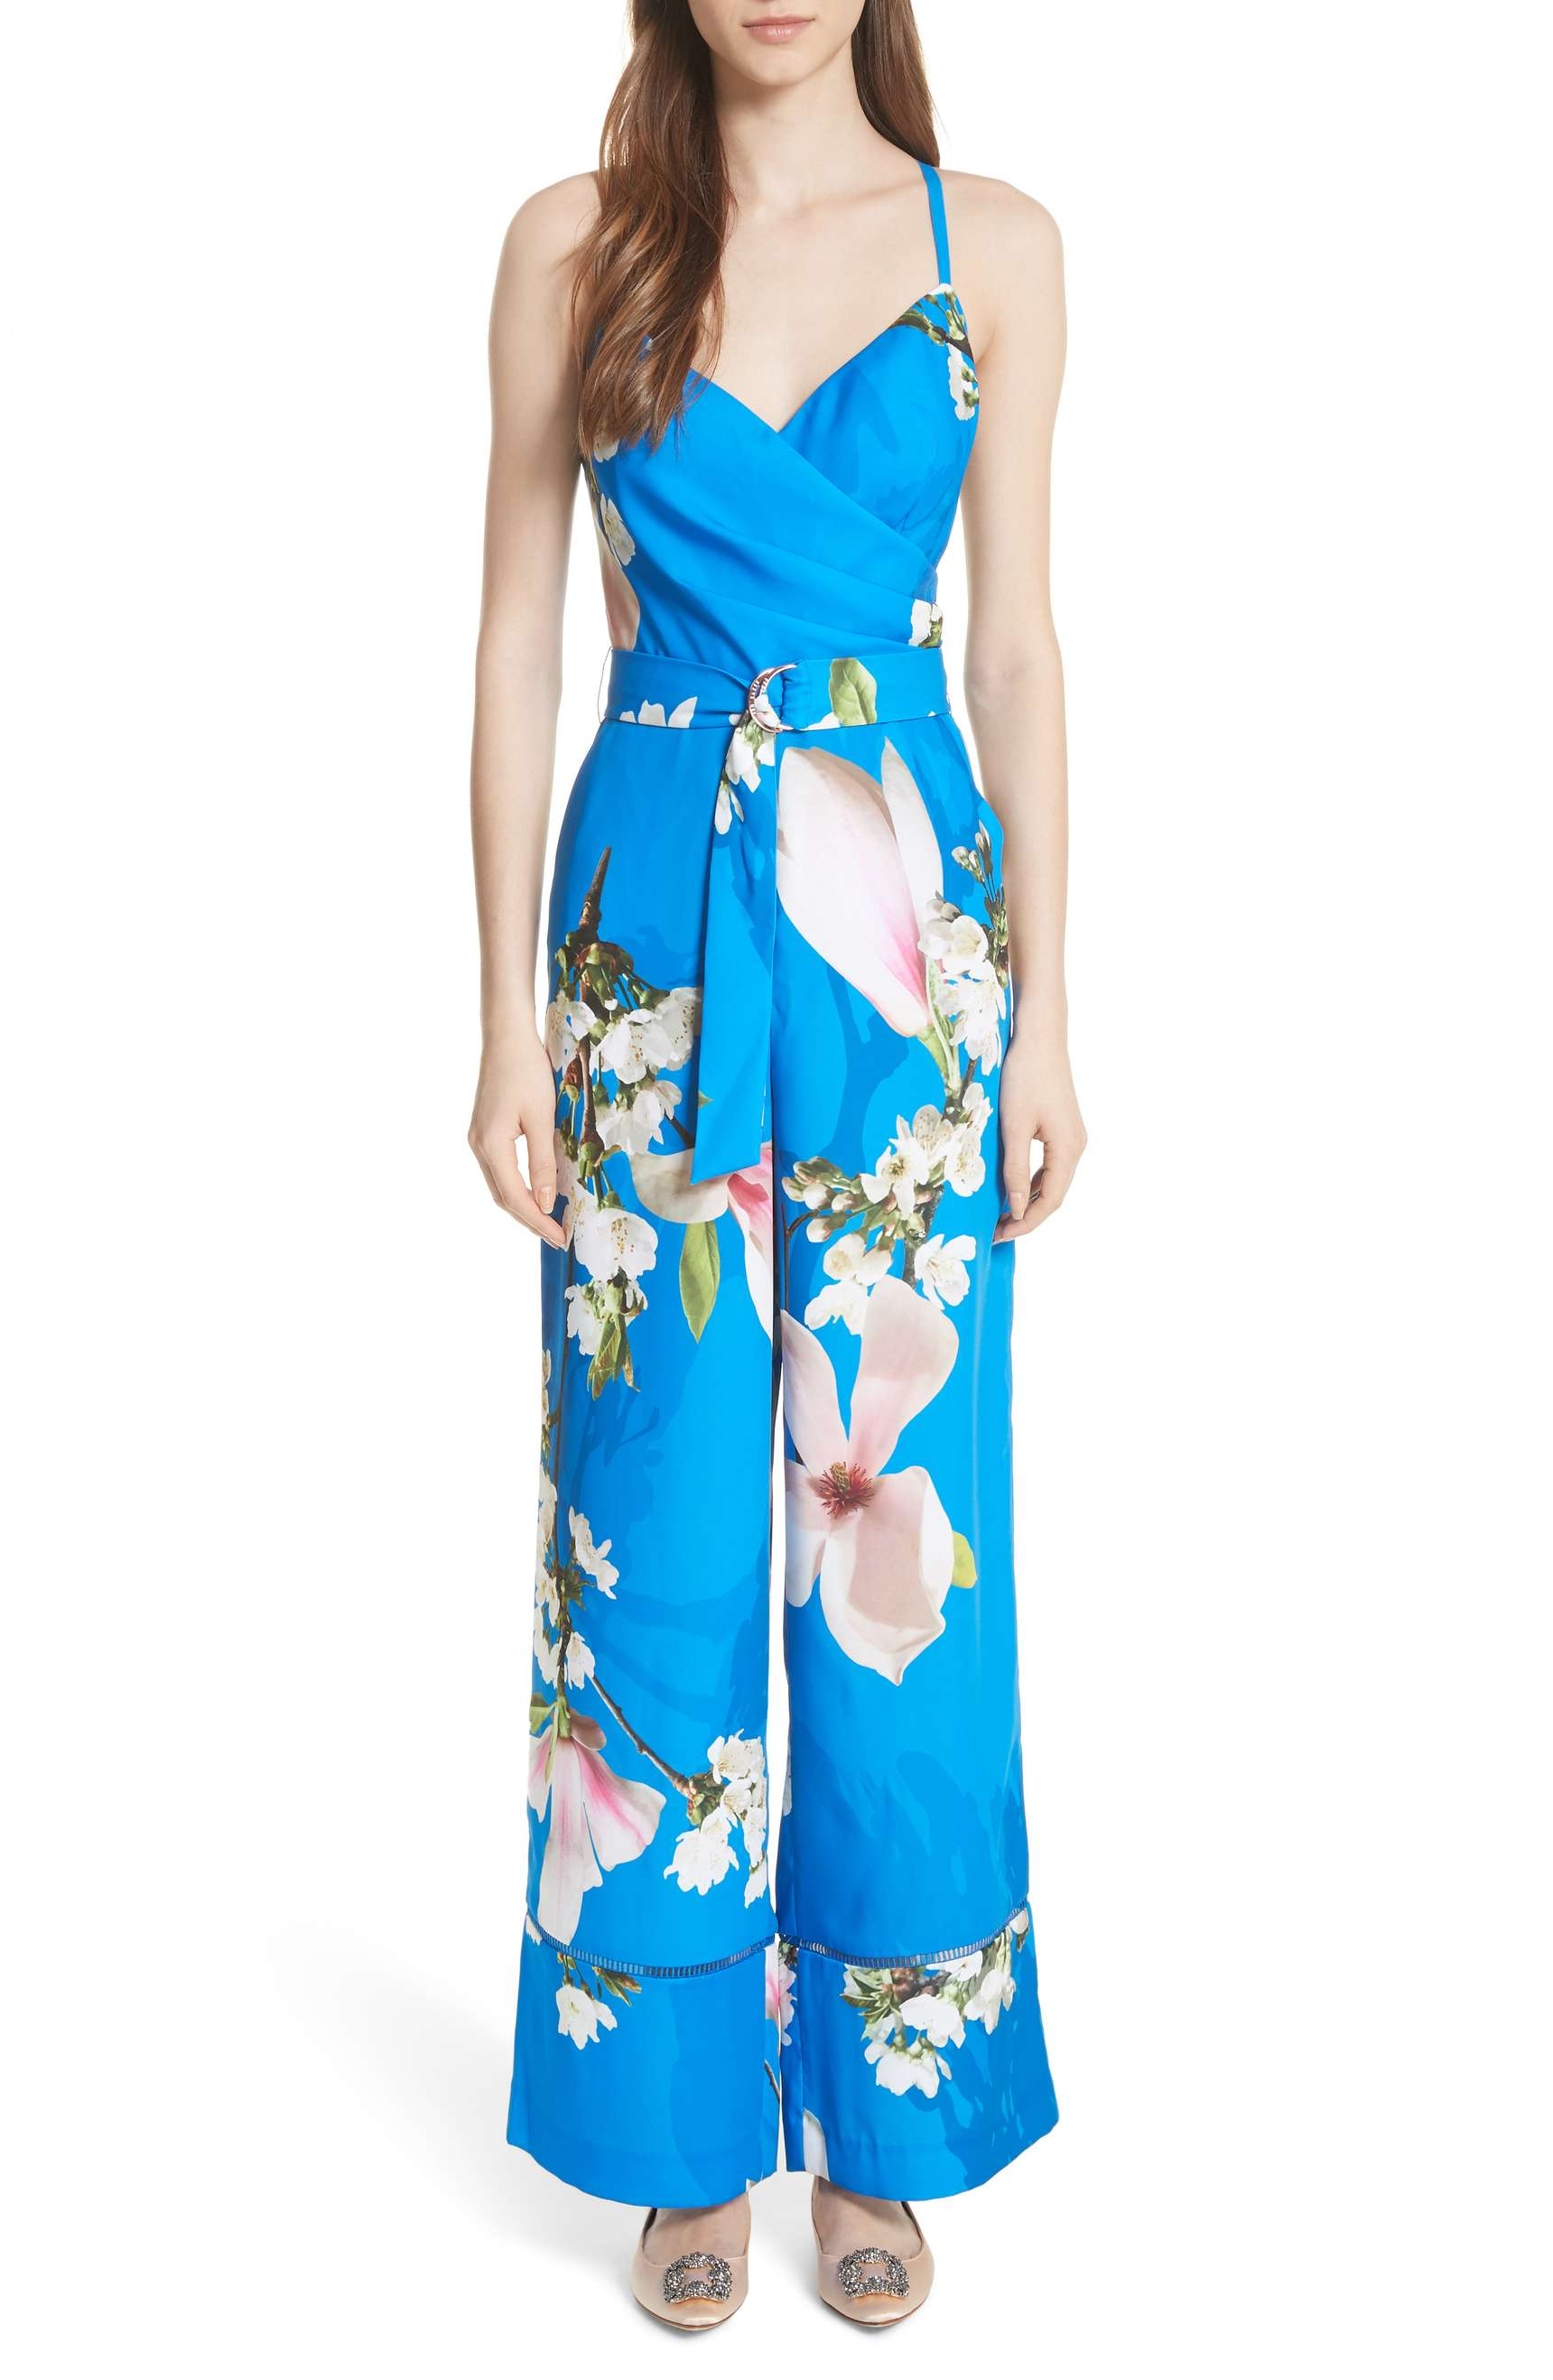 what-to-wear-for-a-spring-wedding-guest-outfit-blue-med-jumpsuit-floral-print-hairr-dinner.jpg